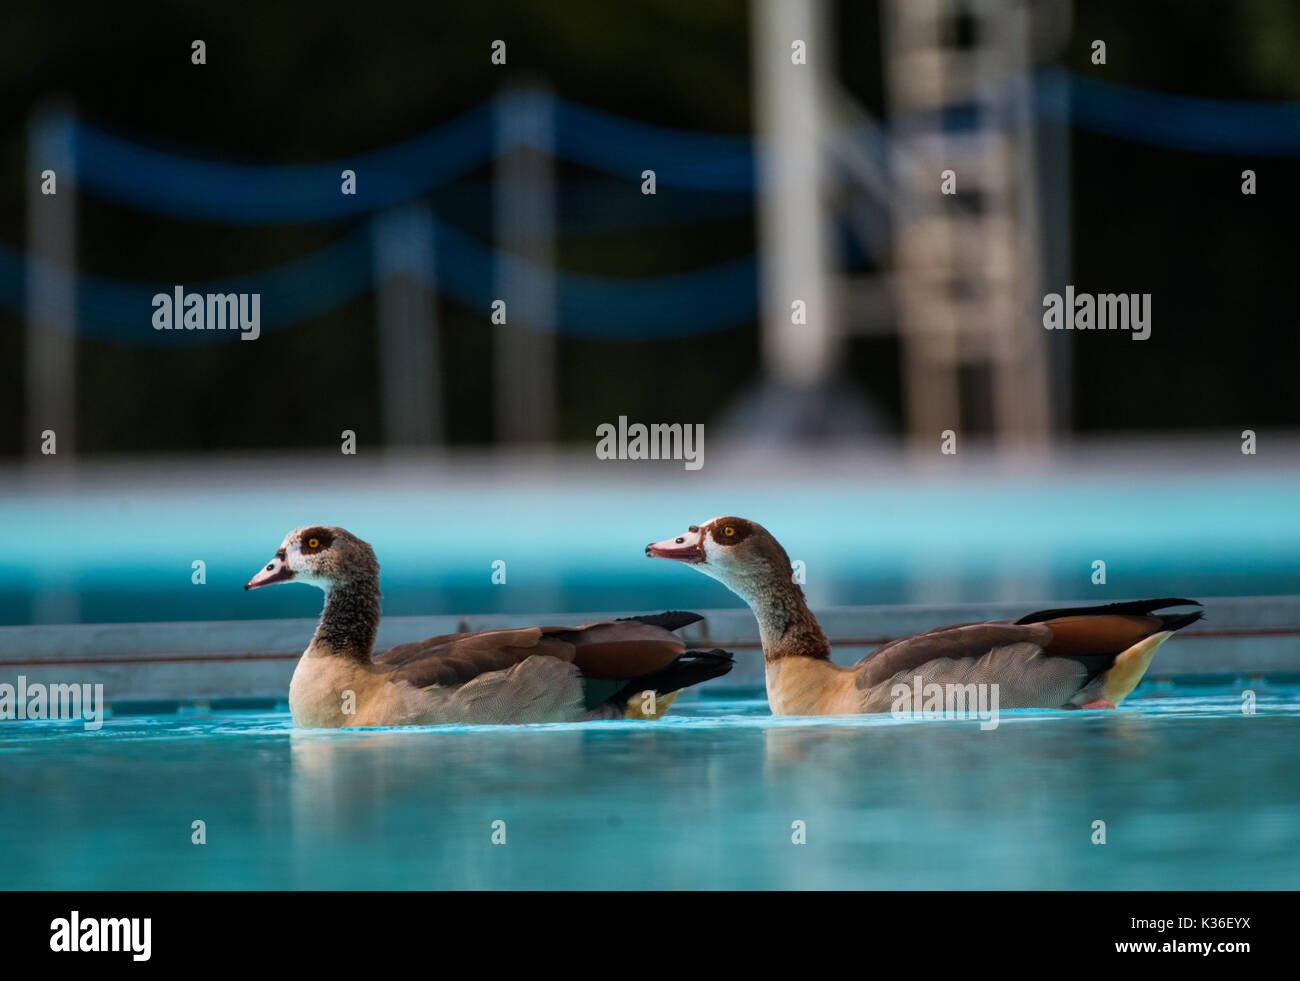 Swimming Pool Frankfurt Frankfurt Germany 01st Sep 2017 Two Egyptian Geese Are